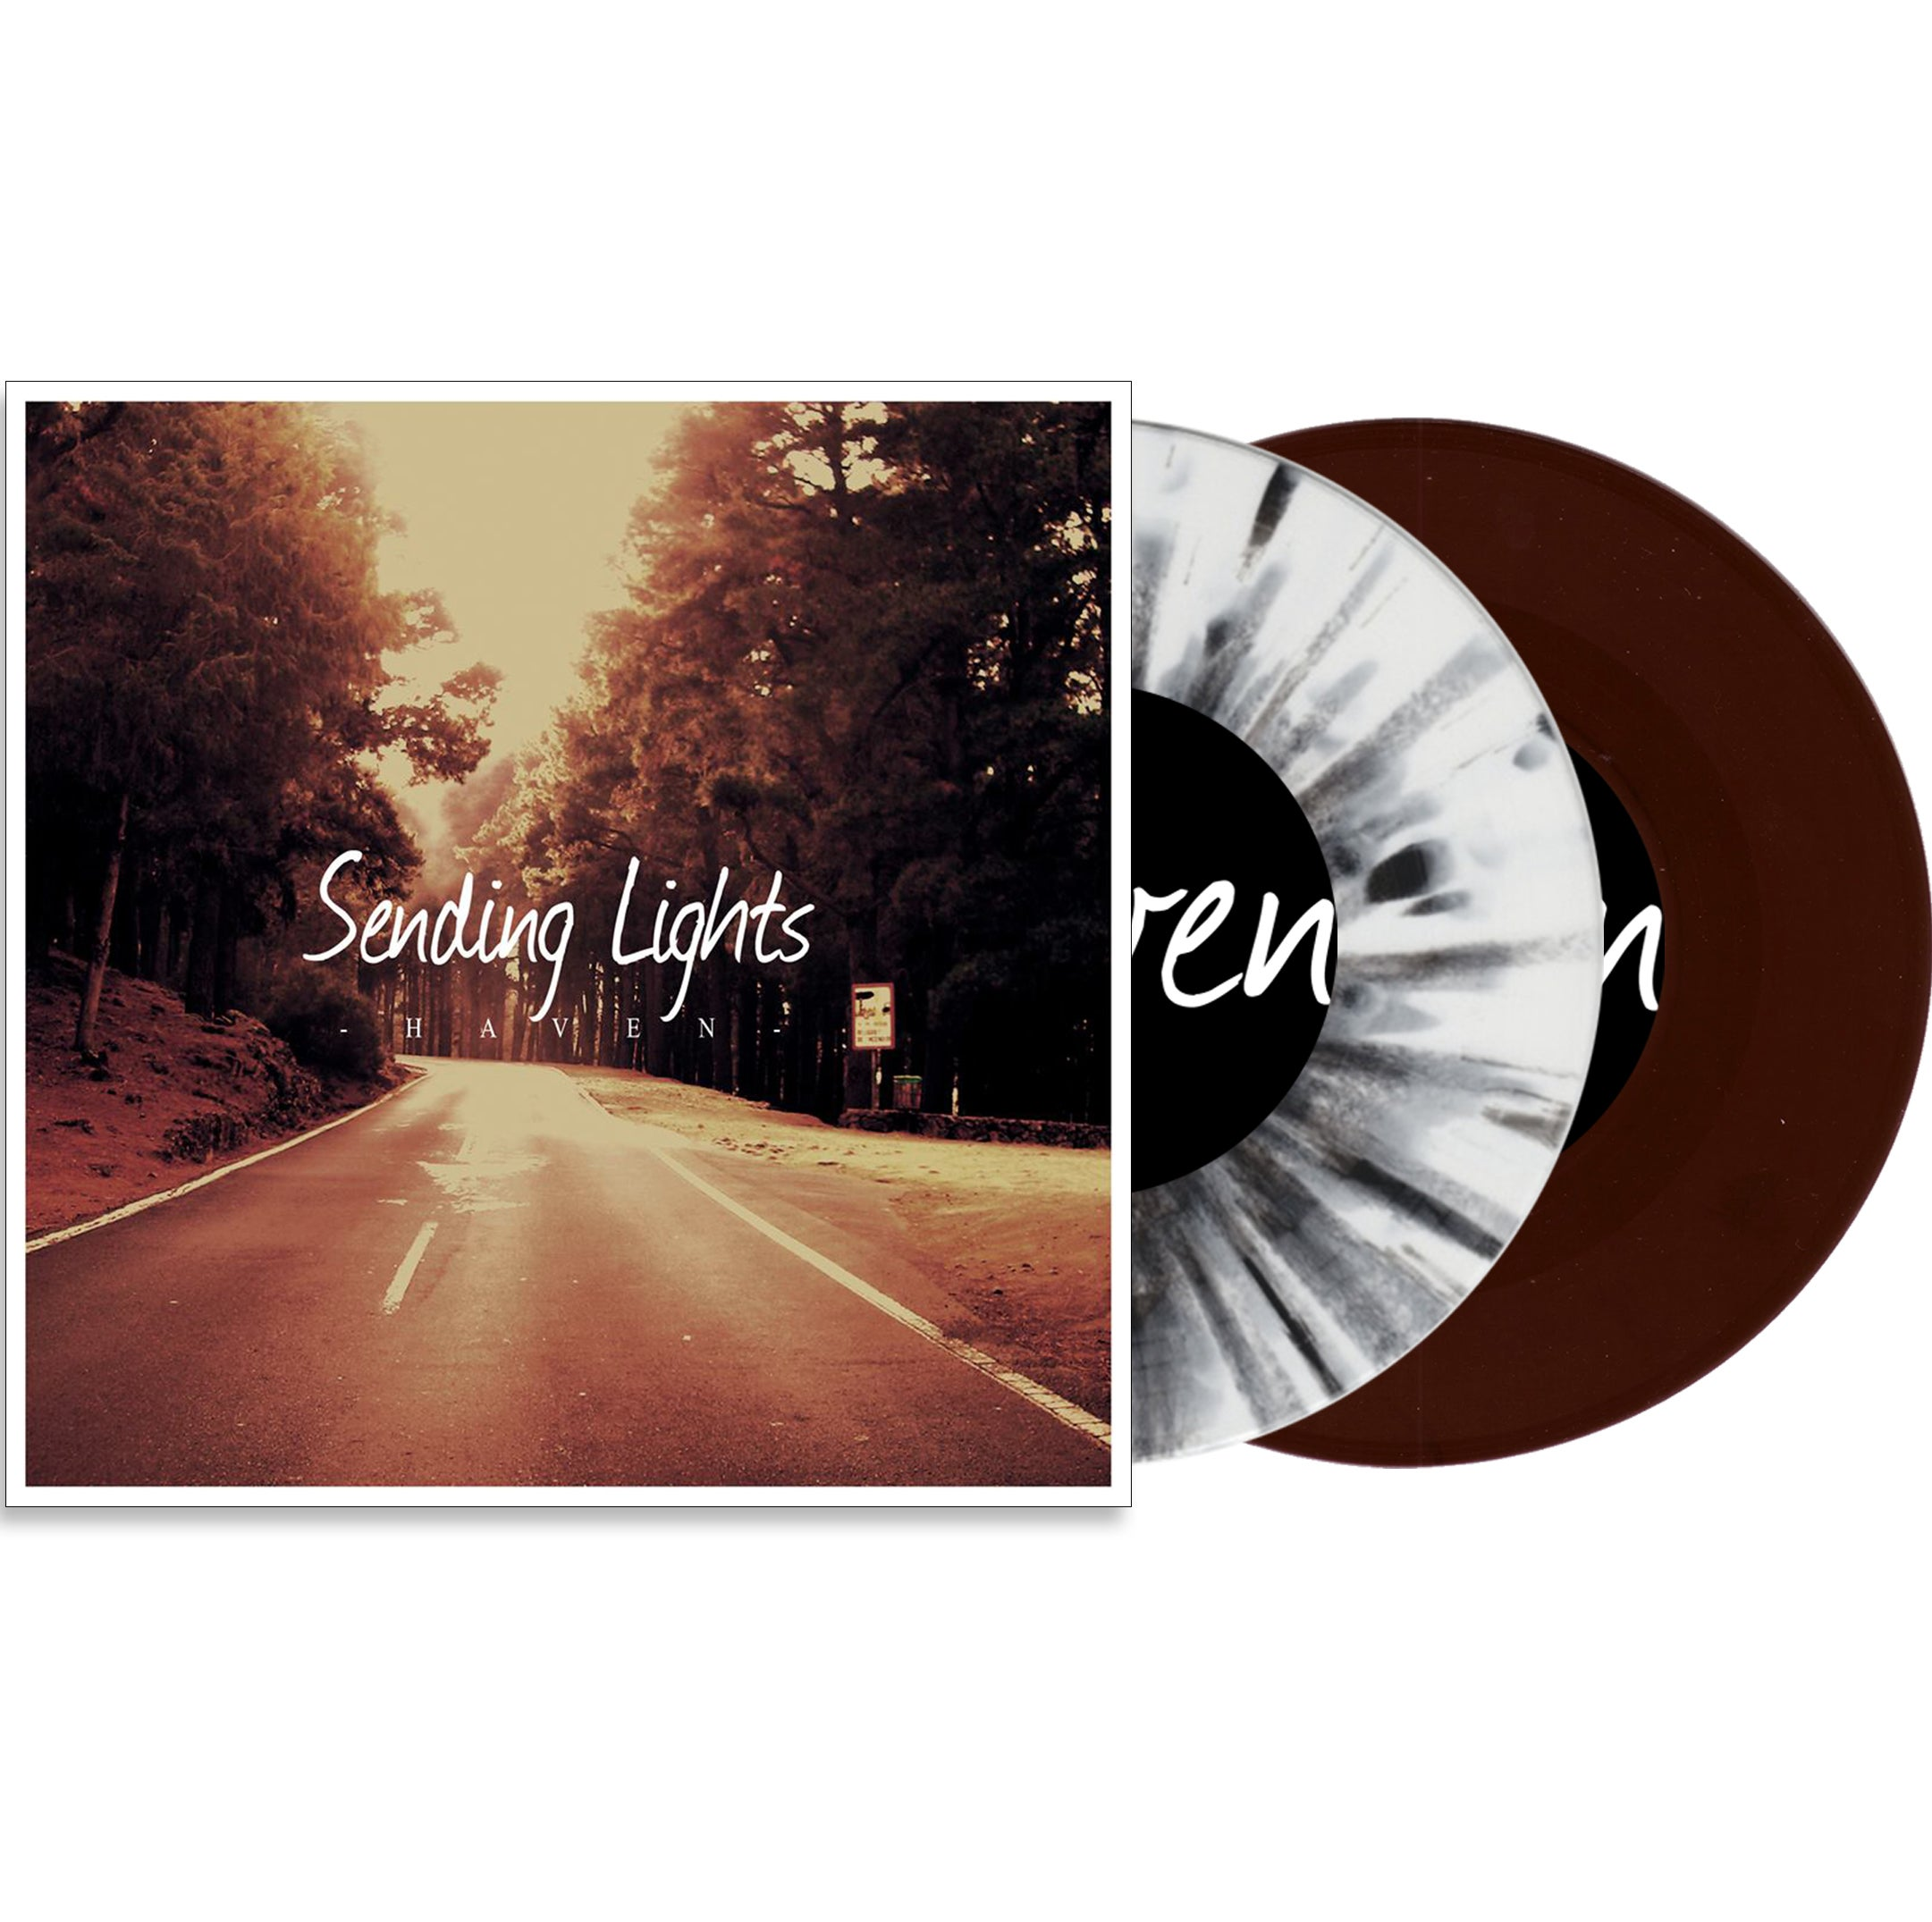 Beyond Hope Records Sending Lights